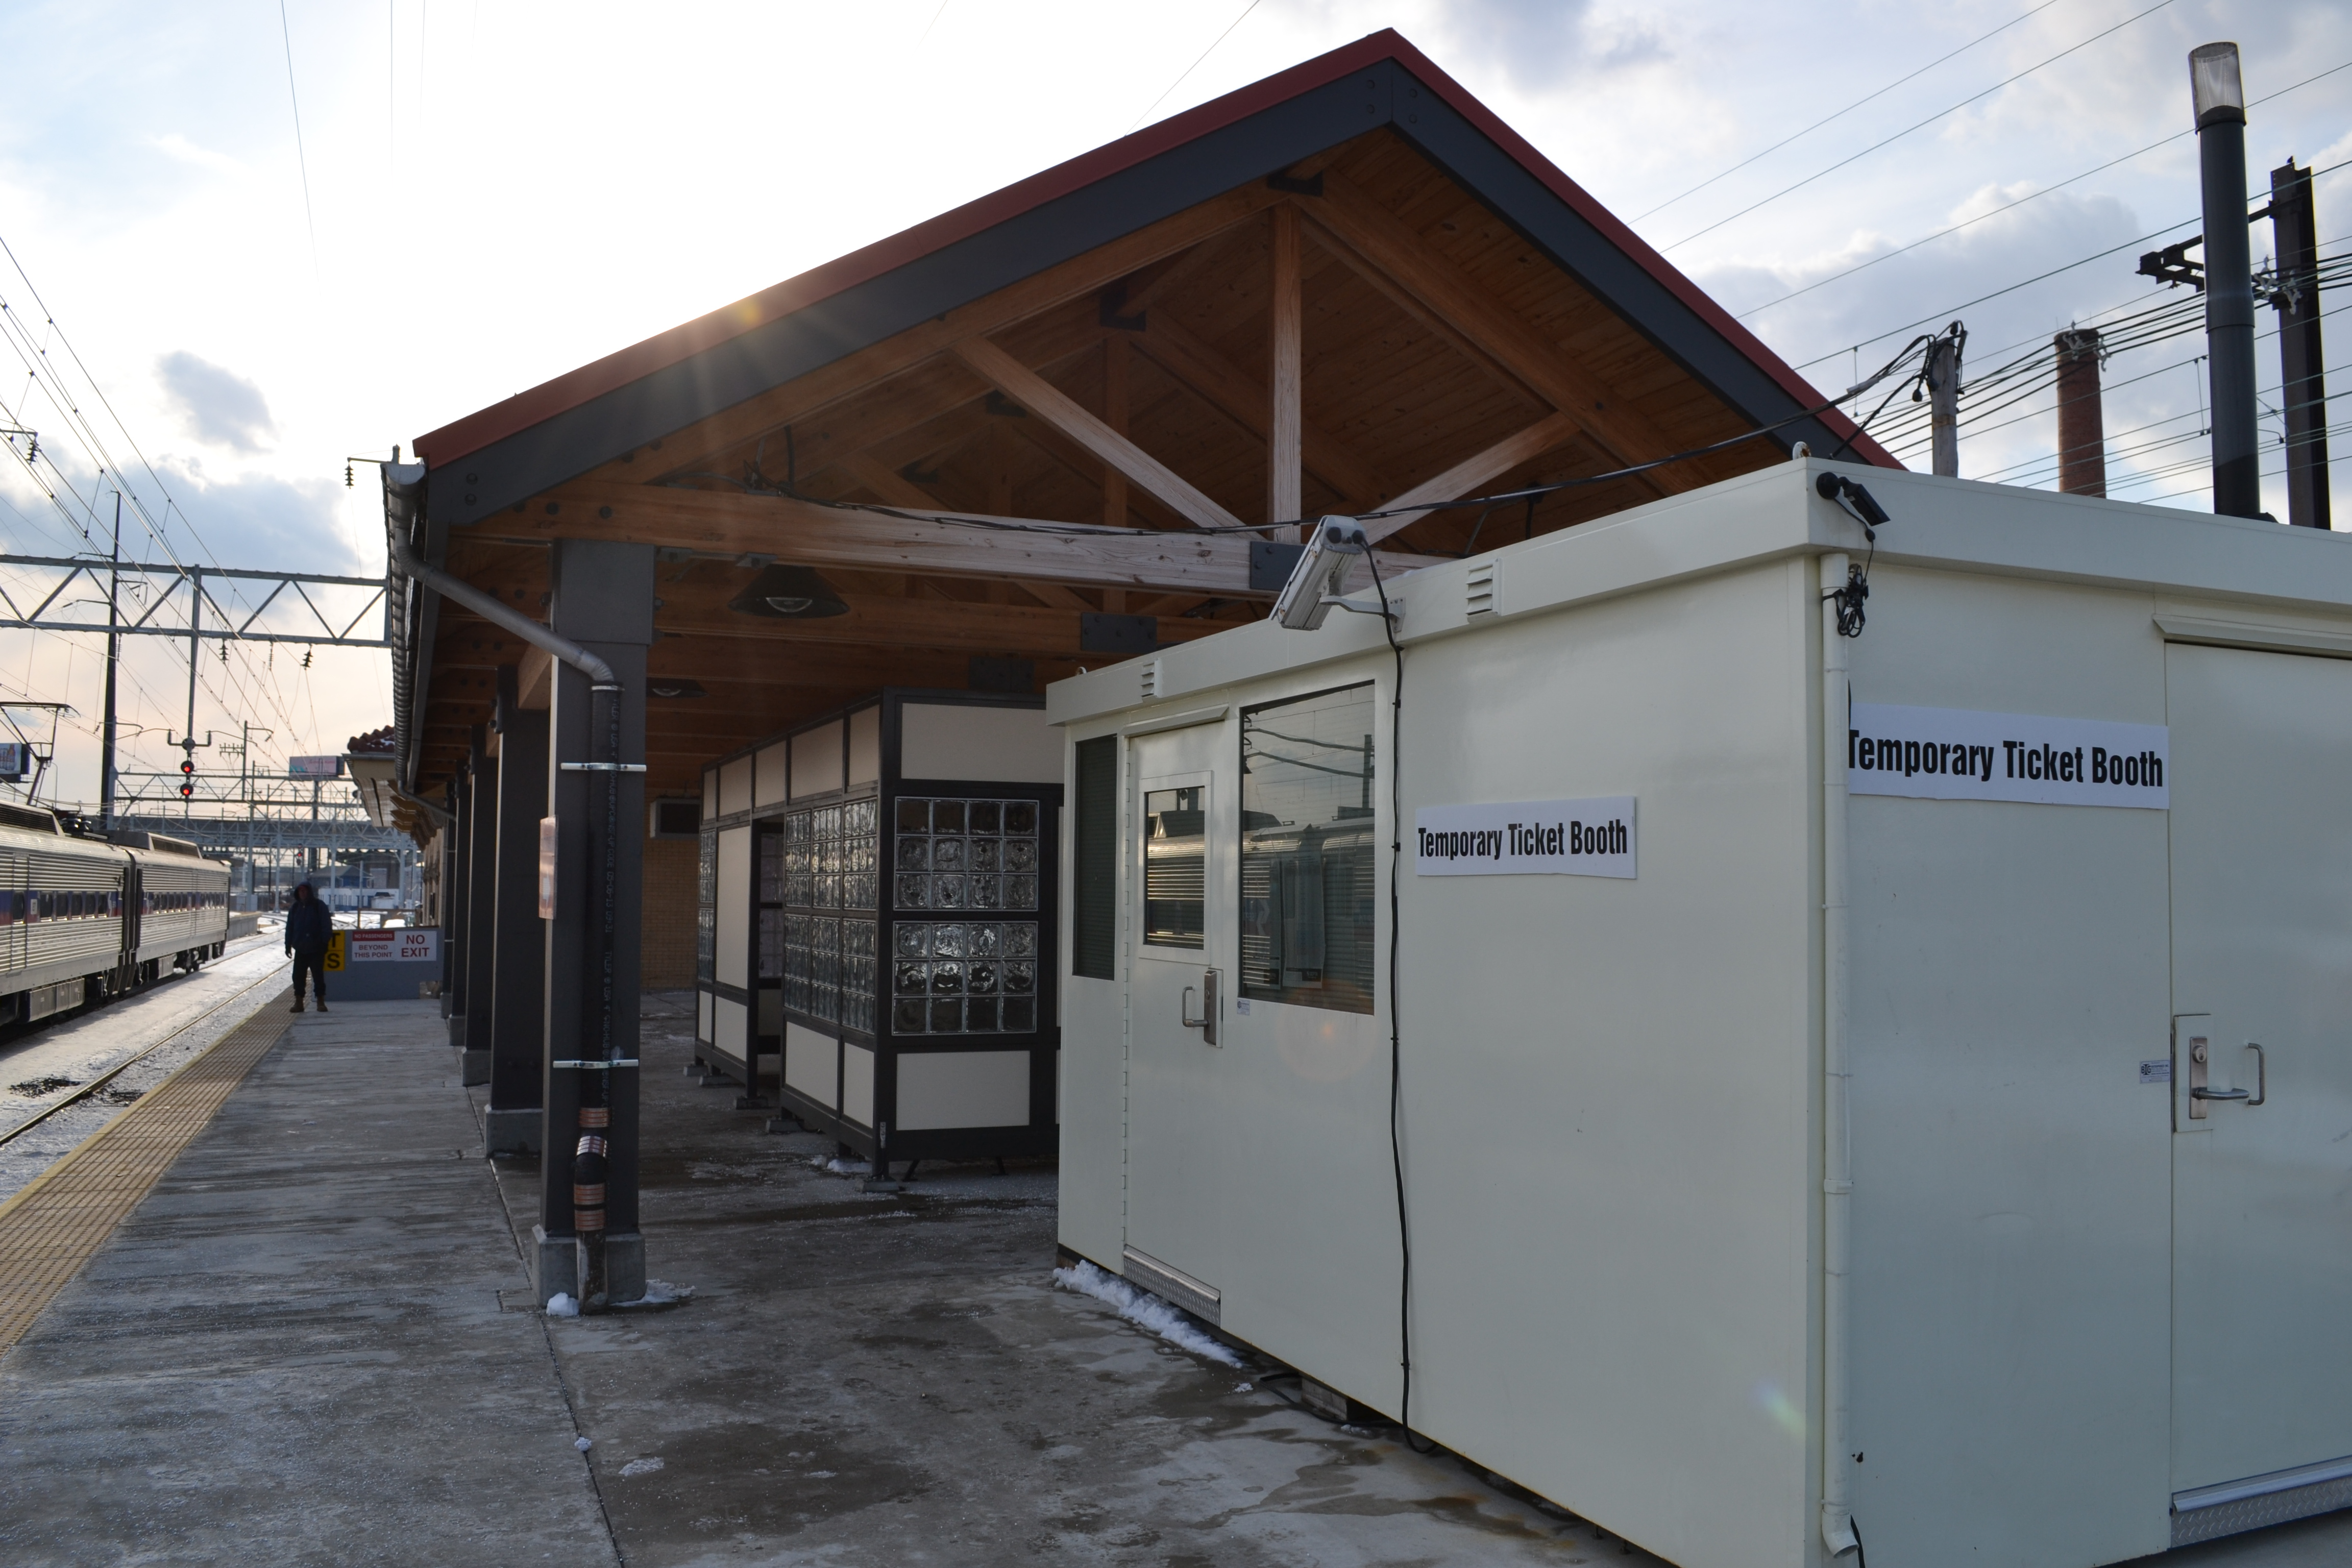 A temporary ticket booth was set up so crews can work on the station building